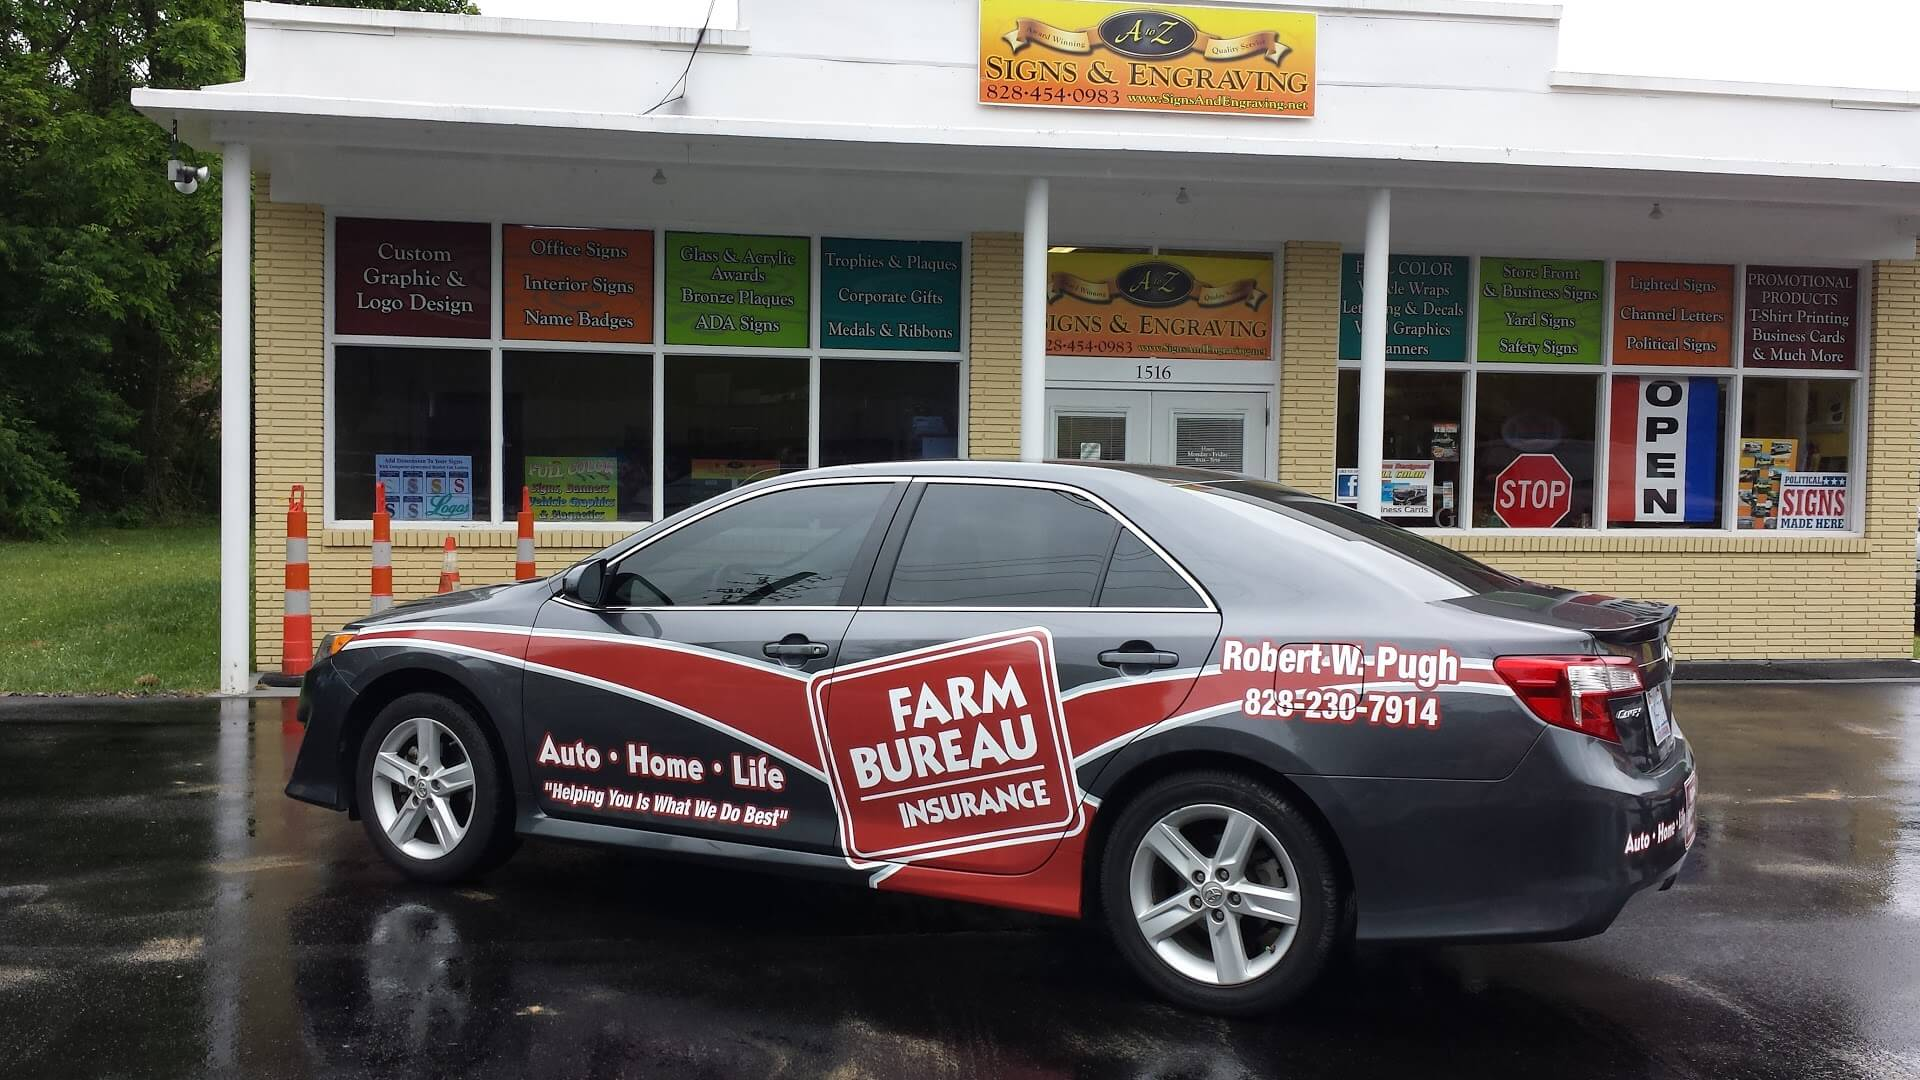 Vehicle Wraps Car Signs Graphic Lettering  Magnets - Custom car magnets for business   promote your brand